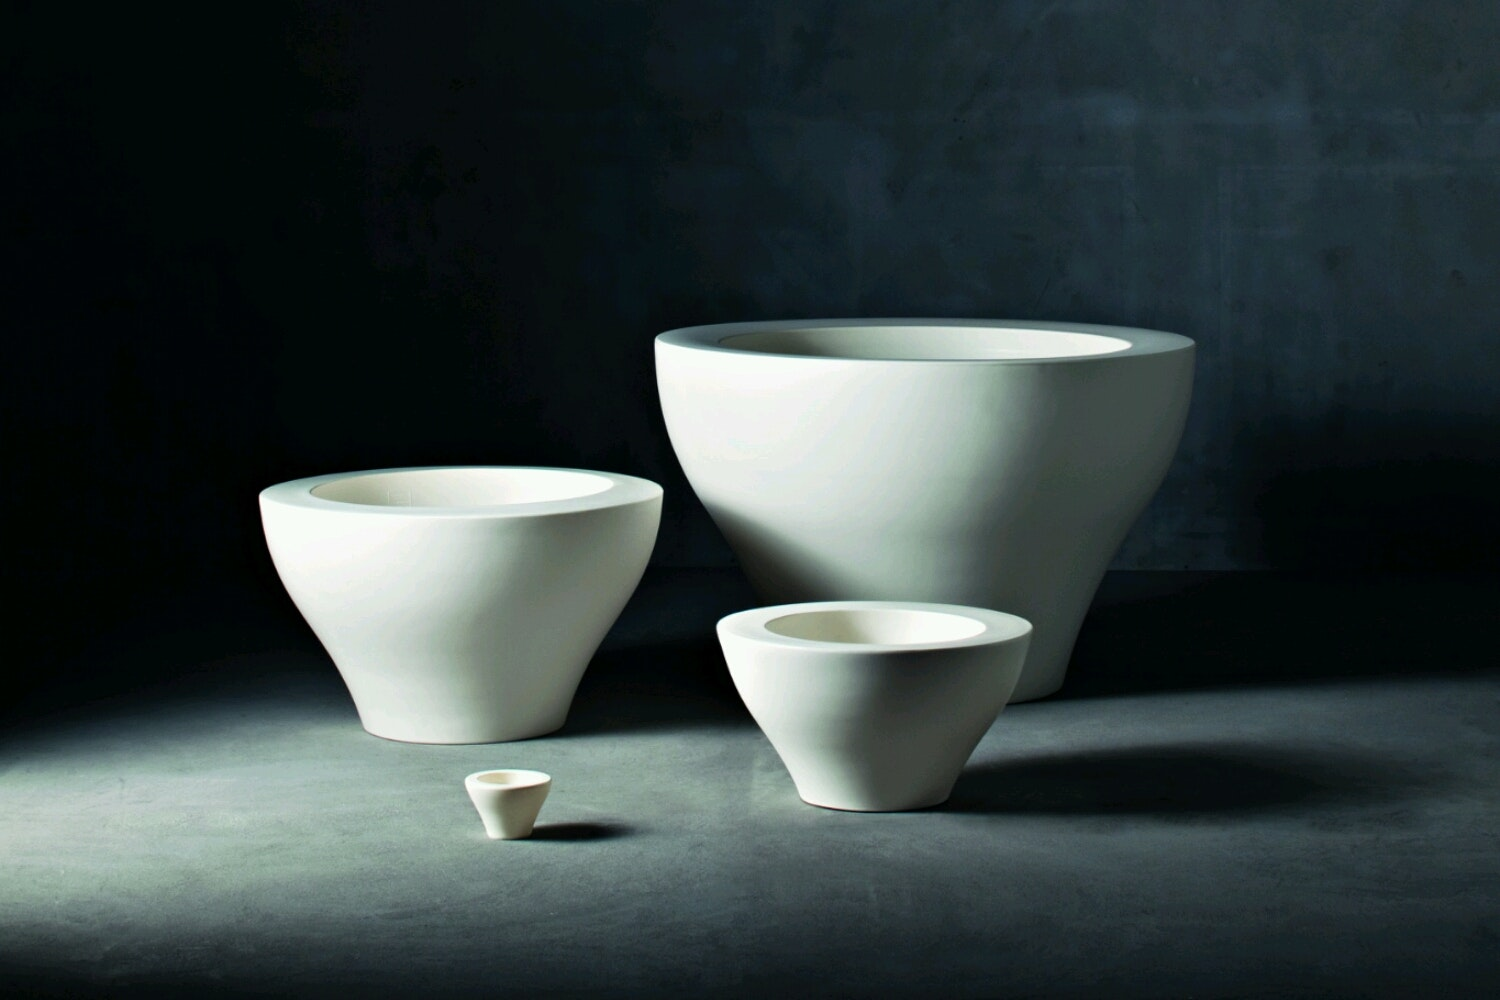 Ming Etto Pot by Rodolfo Dordoni for Serralunga